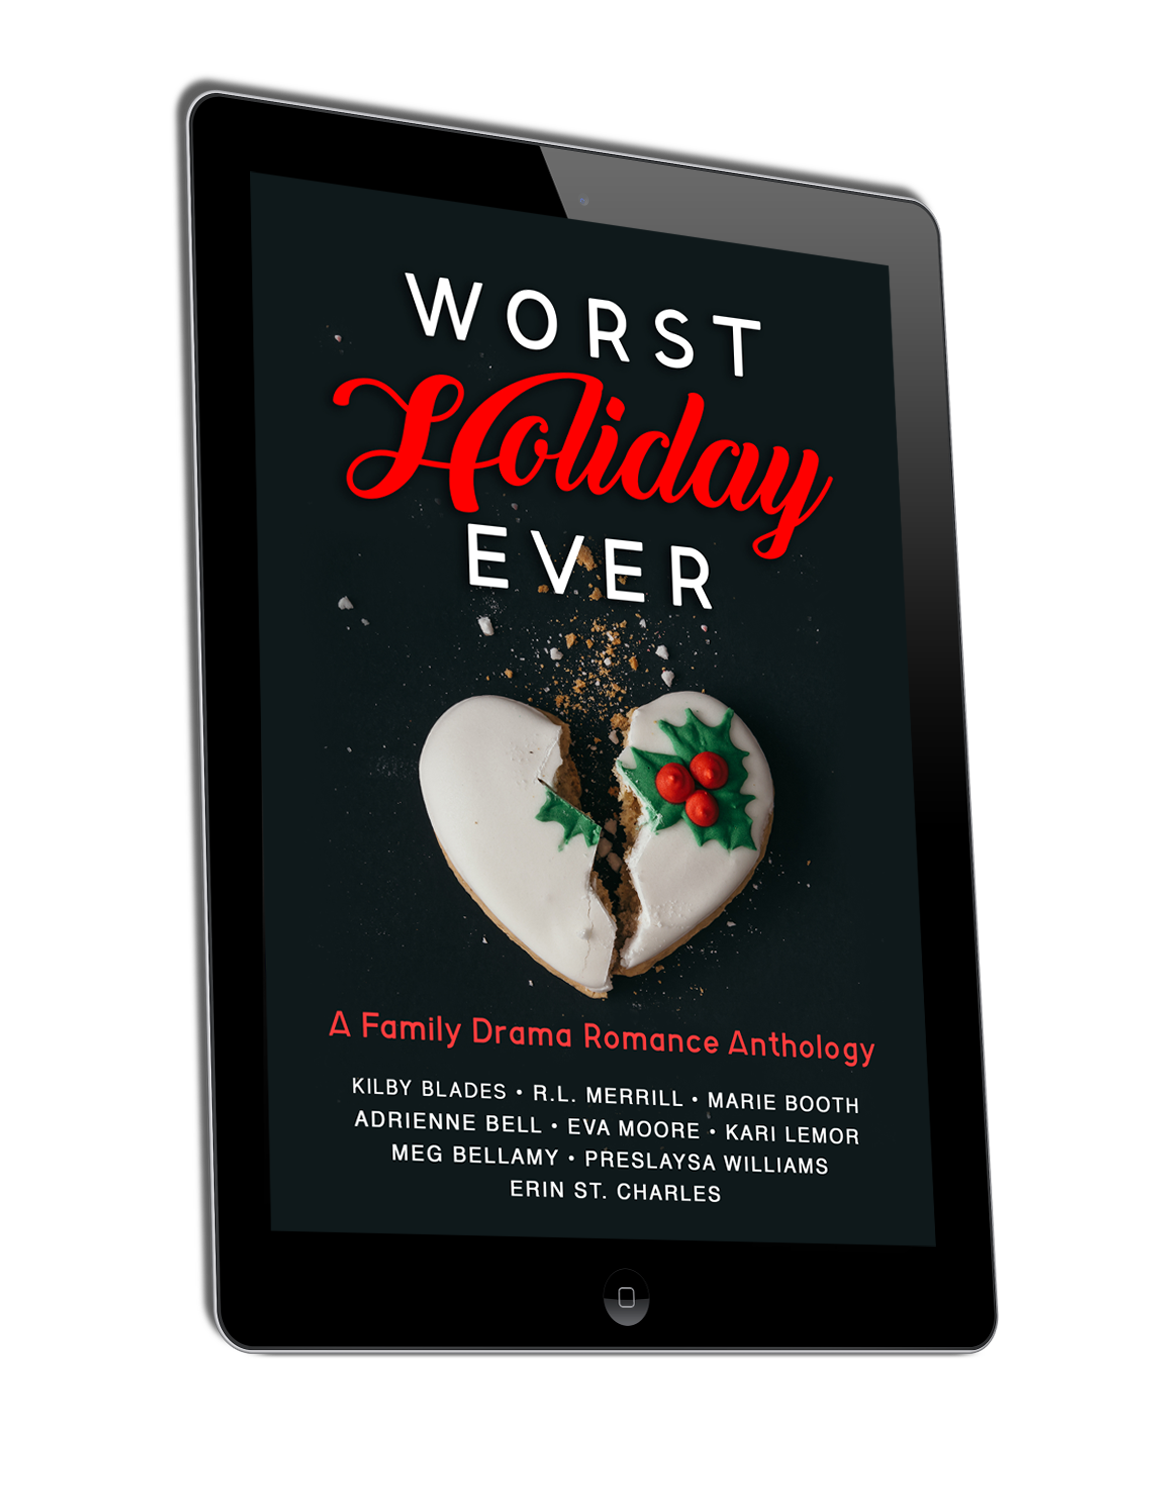 WorstHolidayEver_Tablet[2].png